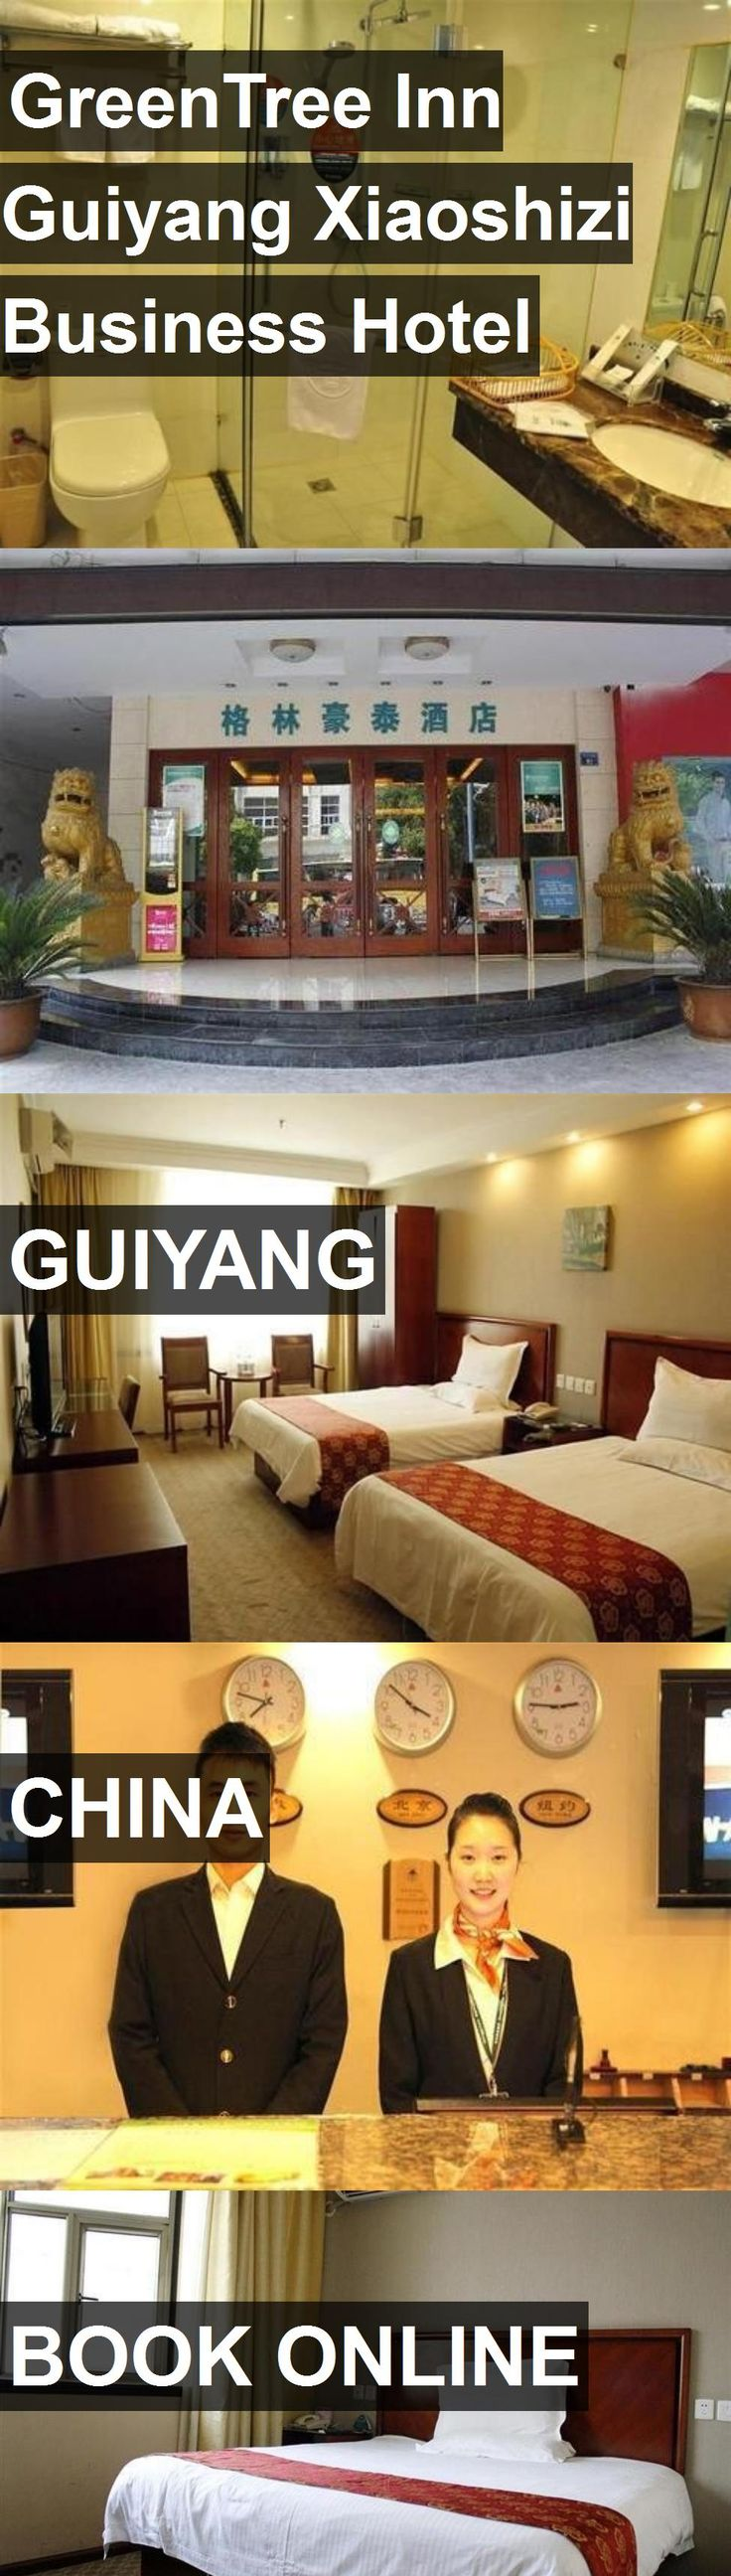 Hotel GreenTree Inn Guiyang Xiaoshizi Business Hotel in Guiyang, China. For more information, photos, reviews and best prices please follow the link. #China #Guiyang #GreenTreeInnGuiyangXiaoshiziBusinessHotel #hotel #travel #vacation